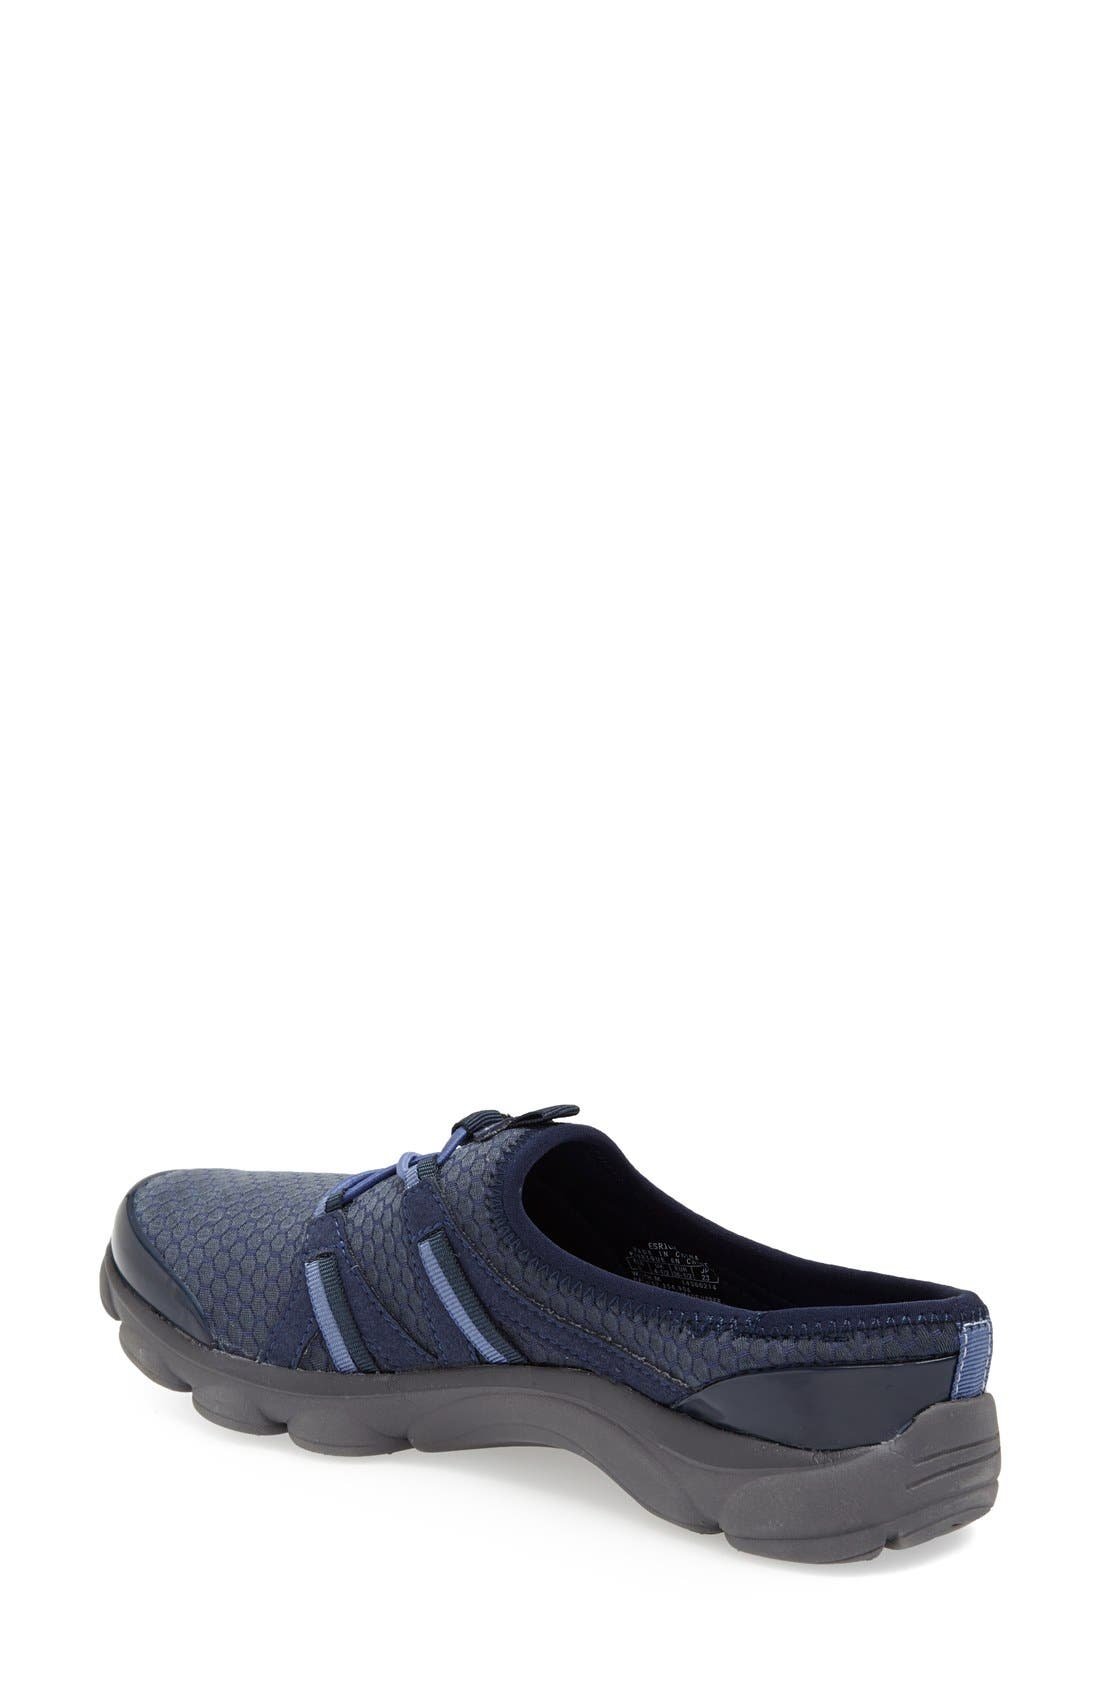 Alternate Image 2  - Easy Spirit 'e360 - Rich' Slip-On Sneaker (Women)